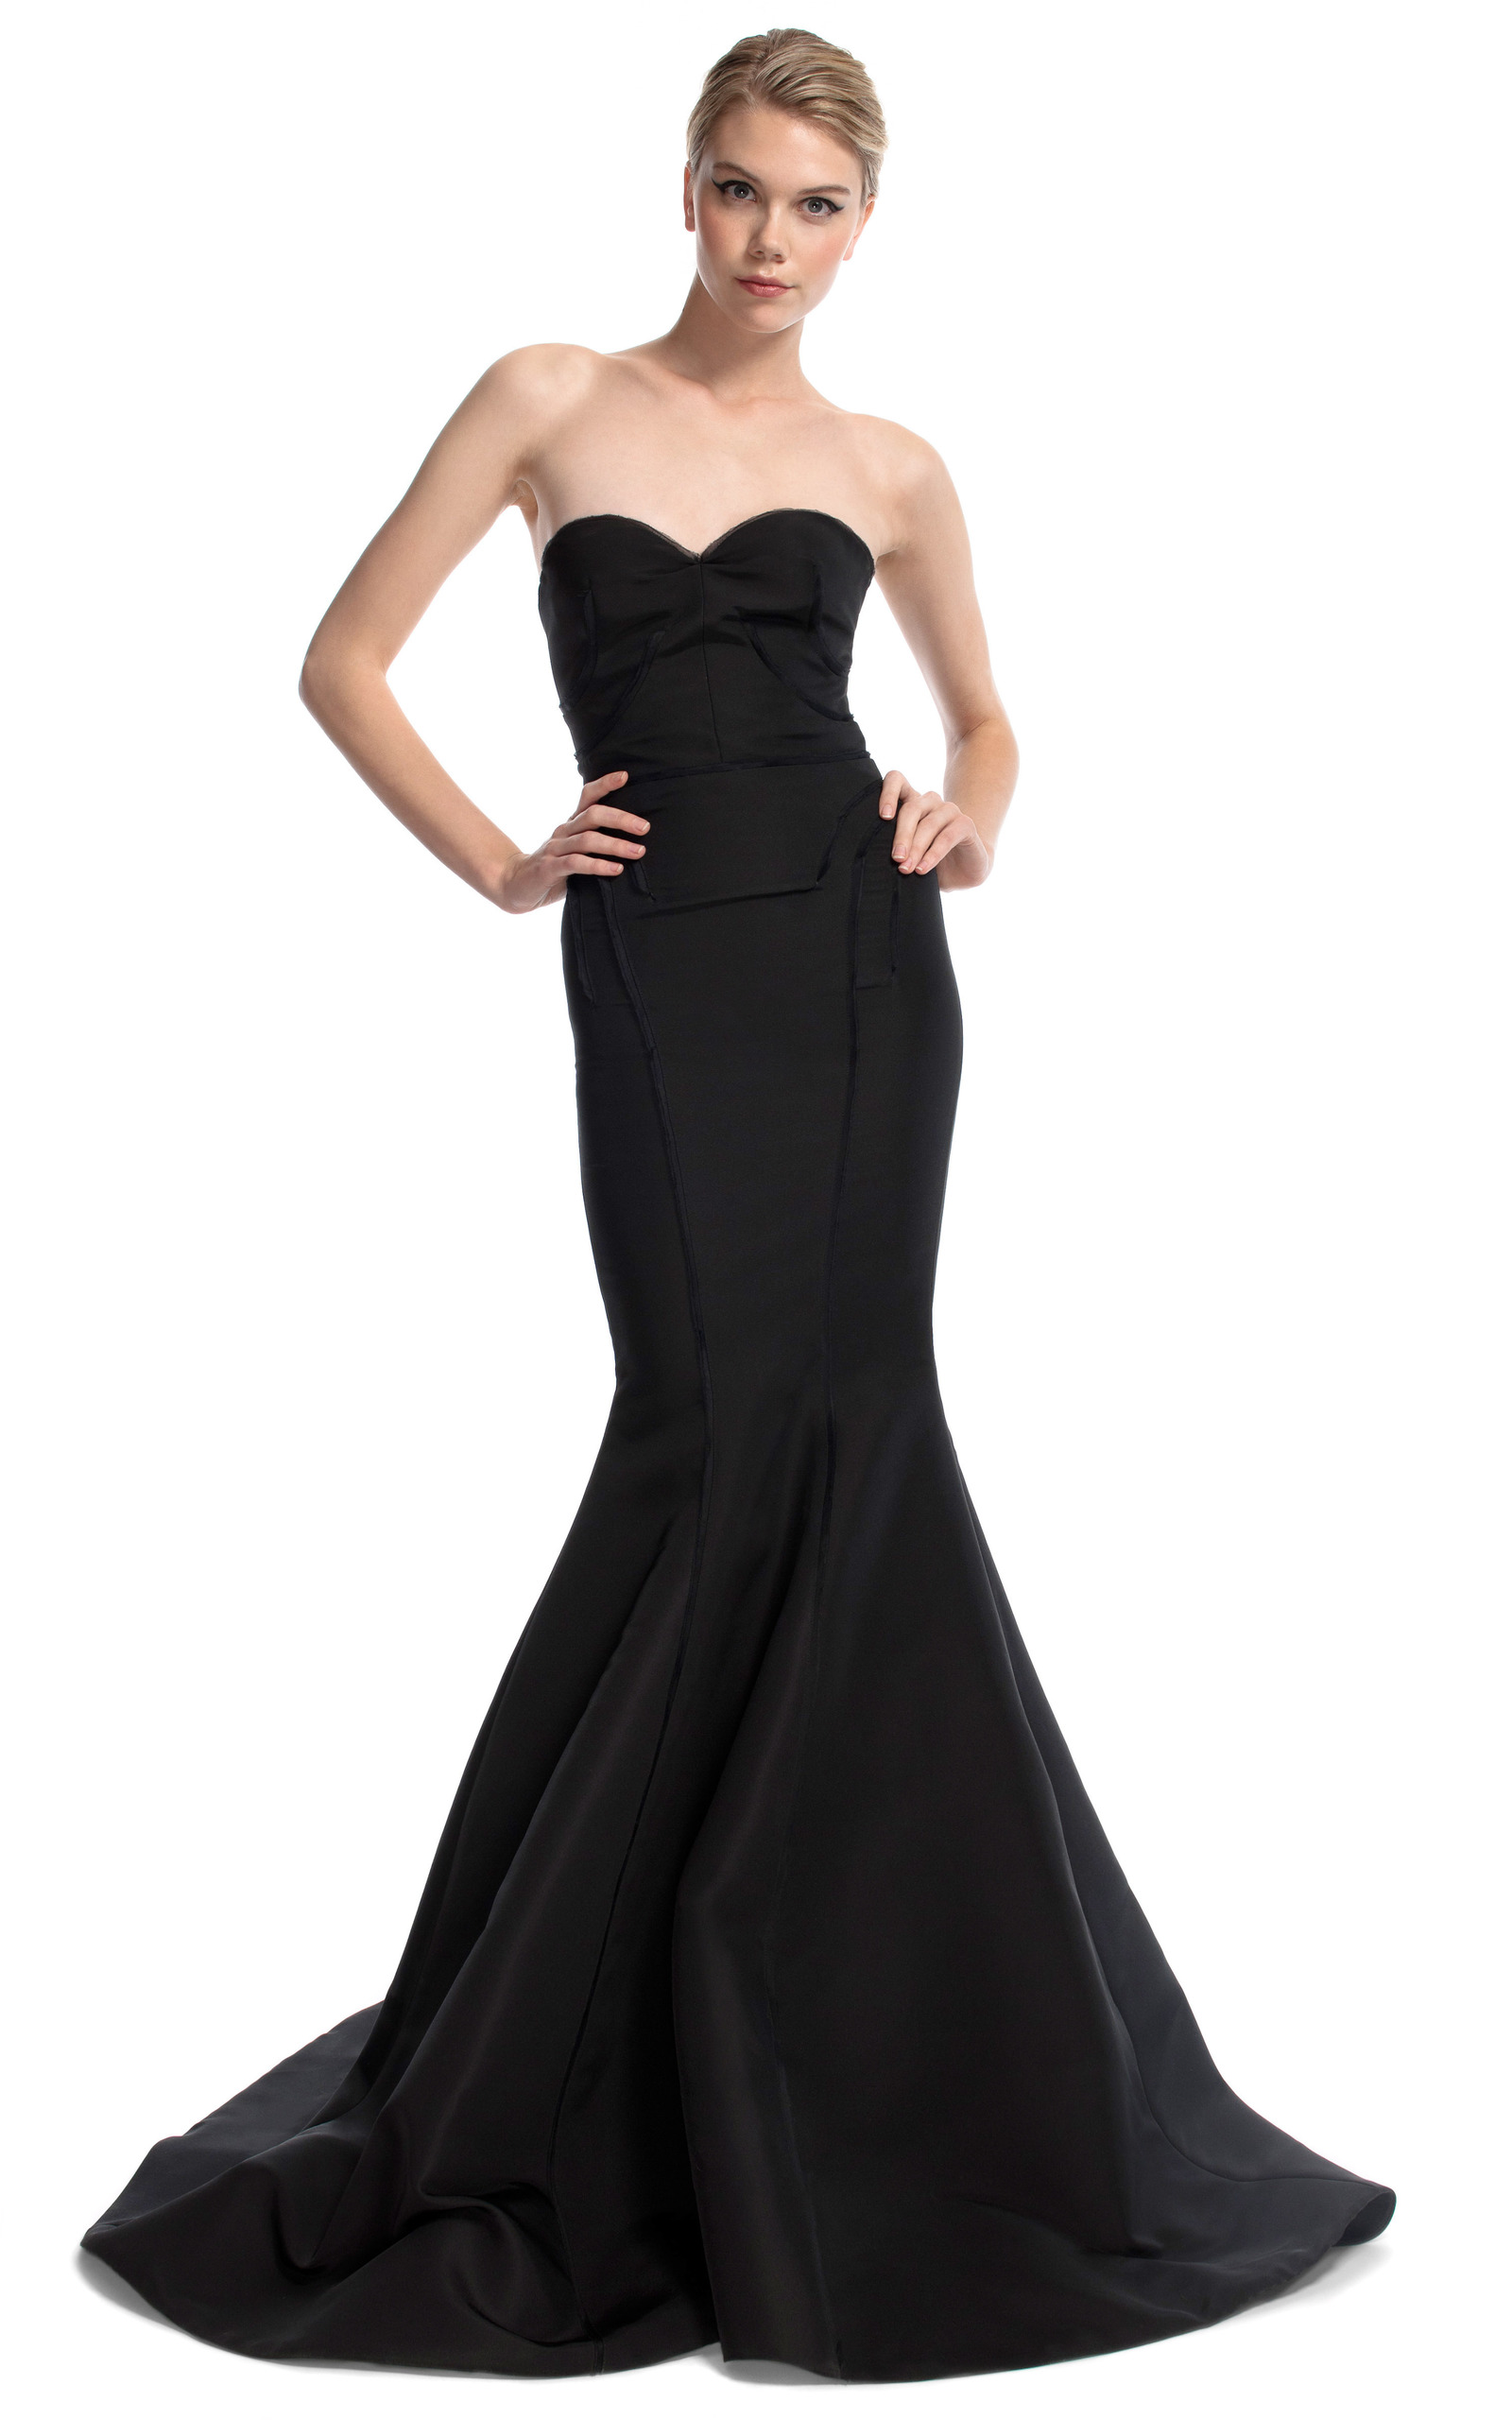 47dcb2590c7 Black Strapless Evening Gown by Zac Posen